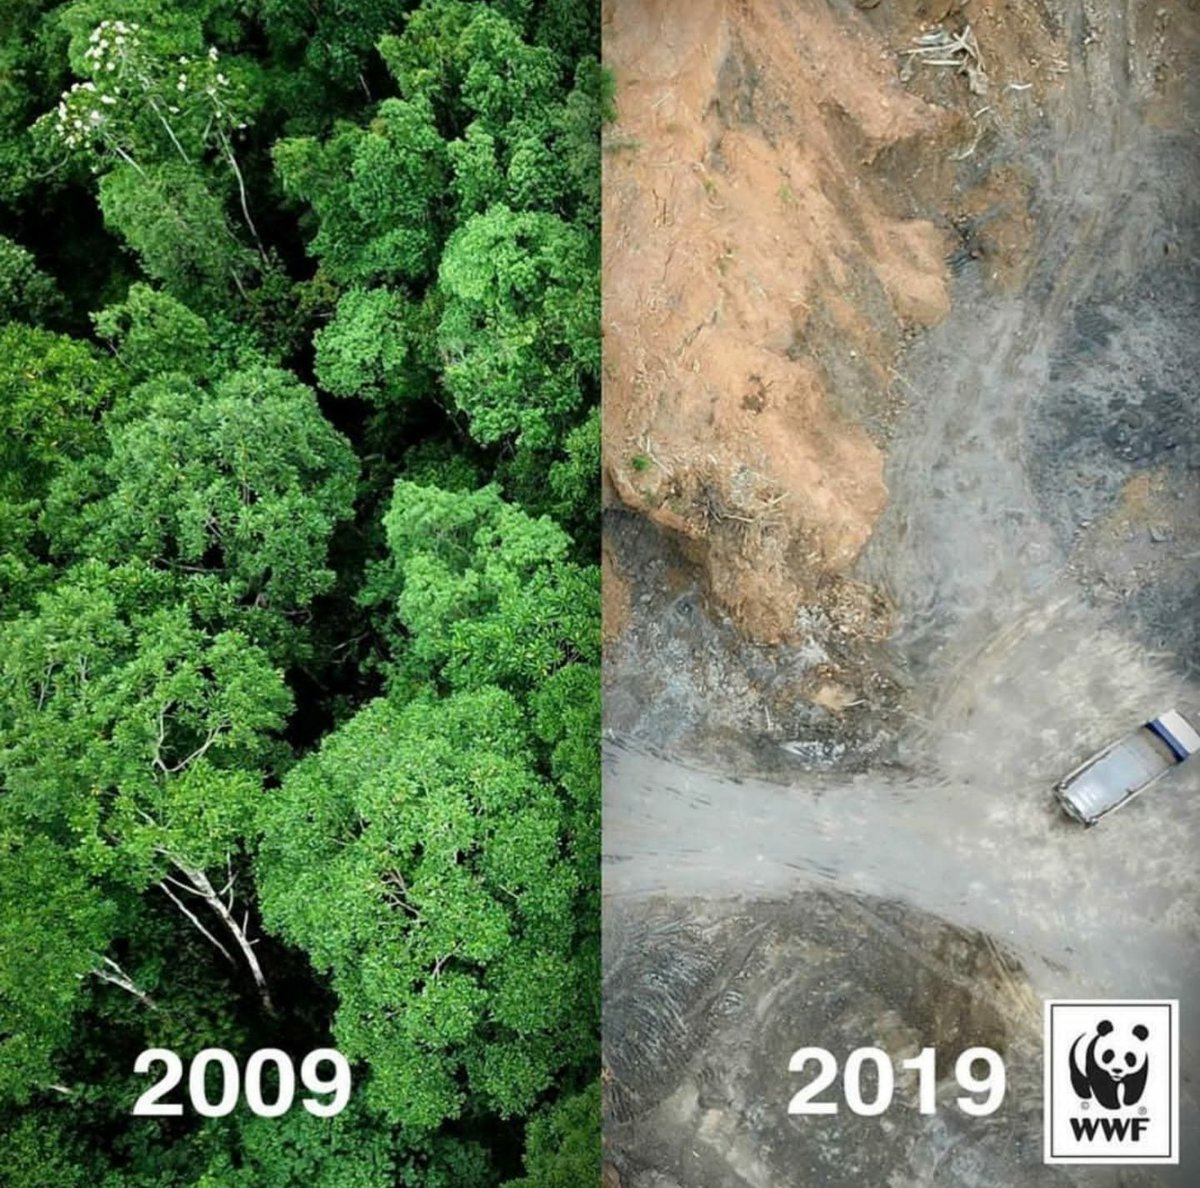 People Use 10-Year Challenge to Show How Devastatingly Different Our Planet Looks